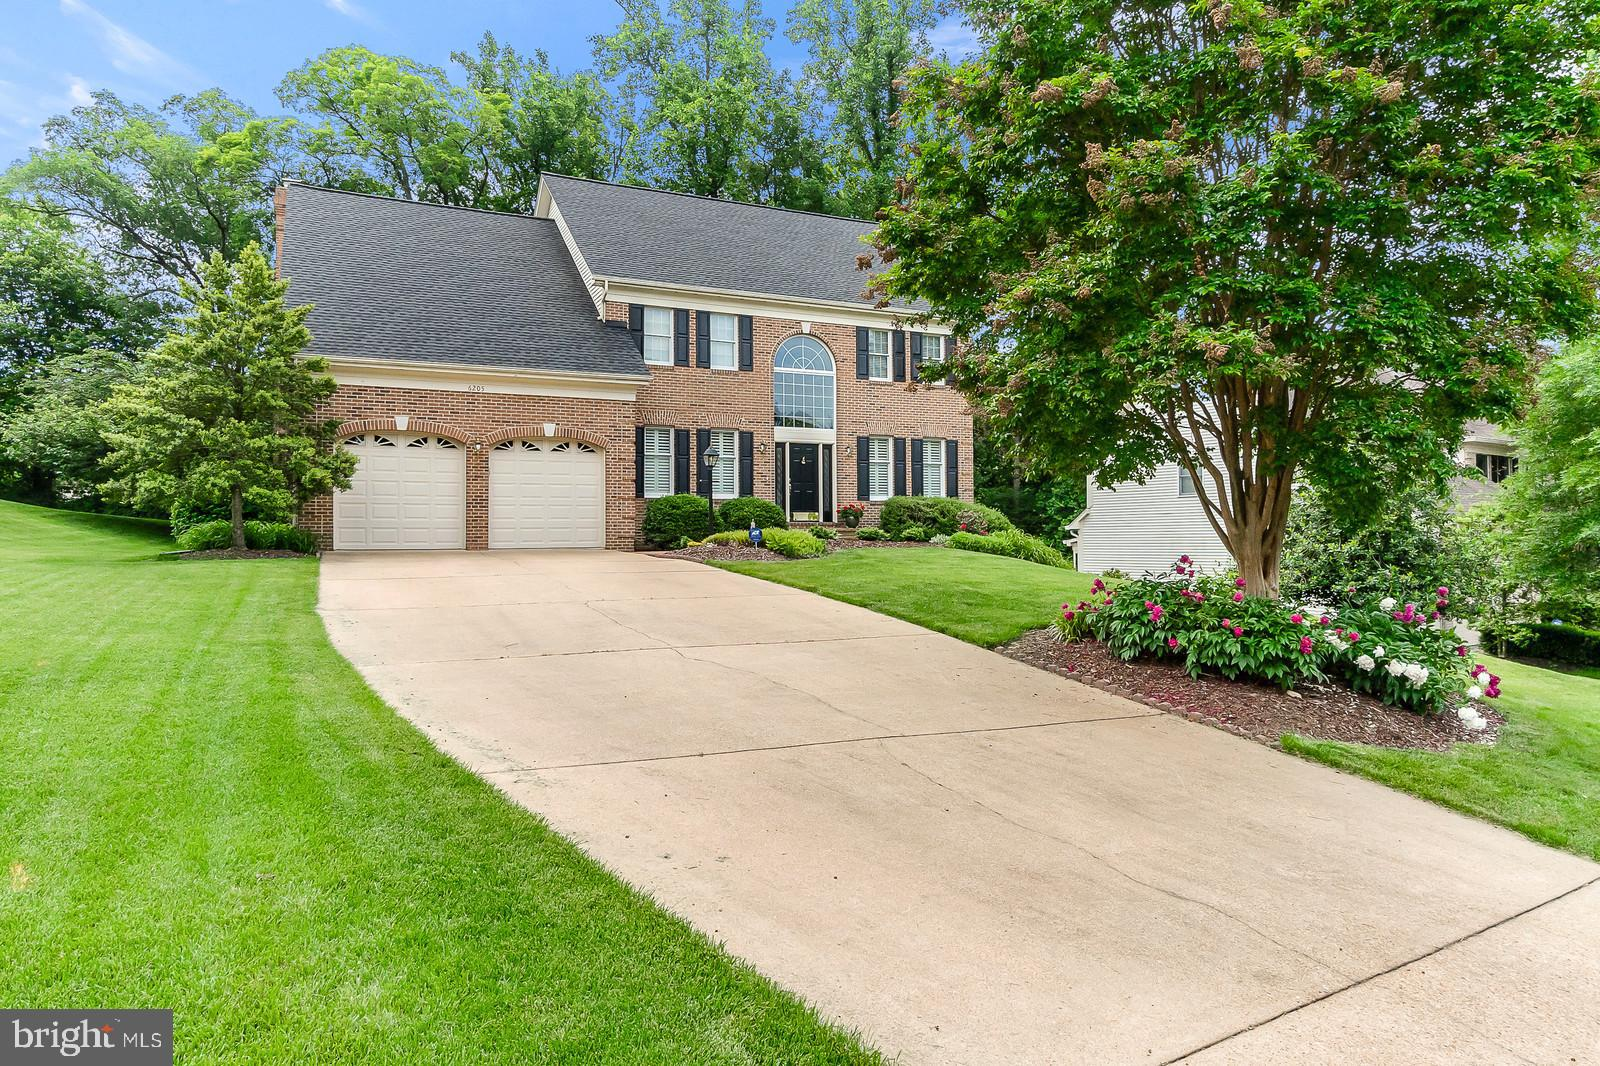 IDEAL BRICK FRONT, 5 BEDROOM COLONIAL ON .43 ACRE LOT THAT BACKS TO TREES.  LONG DRIVEWAY & 2 CAR GARAGE.  SUNROOM IS ALL WINDOWS AND LEADS TO COVERED WOOD DECK.  HUGE, OUTSIZED FAMILY ROOM W/ RAISED BRICK FIREPLACE.  GRANITE GOURMET KITCHEN W/ WIDE BUFFET BAR, SS APPLIANCES, DOUBLE OVEN, BUILT-IN MICROWAVE.  BREAKFAST TABLE AREA.  HARDWOOD FORMAL DINING ROOM, LIVINGROOM AND STUDY.  ELEGANT CROWN MOLDING AND SHADOWBOXING.  TWO STORY FOYER HAS HARDWOOD FLOORS & STAIRS WITH WROUGHT IRON PICKETS AND NEW FRONT DOOR W/ SIDELIGHTS.  SPECTACULAR PALLADIUM WINDOW ABOVE.  SPACIOUS MASTER BEDROOM WITH HALLWAY TO DESIGNER MASTER BATHROOM:  FREESTANDING SOAKING TUB W/ CHANDELIER, QUARTZ COUNTER, BUILT-IN CABINETS, MARBLE FLOORS, GLASS SHOWER ENCLOSURE W/ RAINSHOWER HEAD.  BONUS UNFINISHED ROOM ADJOINS MASTER FOR STORAGE OR FUTURE EXPANSIVE CLOSET SPACE AND SITTING AREA.  HALL BATH ADJOINS GUEST BEDROOM.  SUNLIT WALK-OUT BASEMENT: 7 WINDOWS, HUGE, OPEN AREA, 5TH BEDROOM, FULL BATH, SLIDER LEADS TO WALK-OUT LEVEL PATIO.  LAWN SPRINKLER SYSTEM.  SEE LIST OF UPGRADES.  NEAR PARKS, SHOPPING, TWO METRO STATIONS, MINUTES RTE 395.  COMMUTERS DREAM!!!